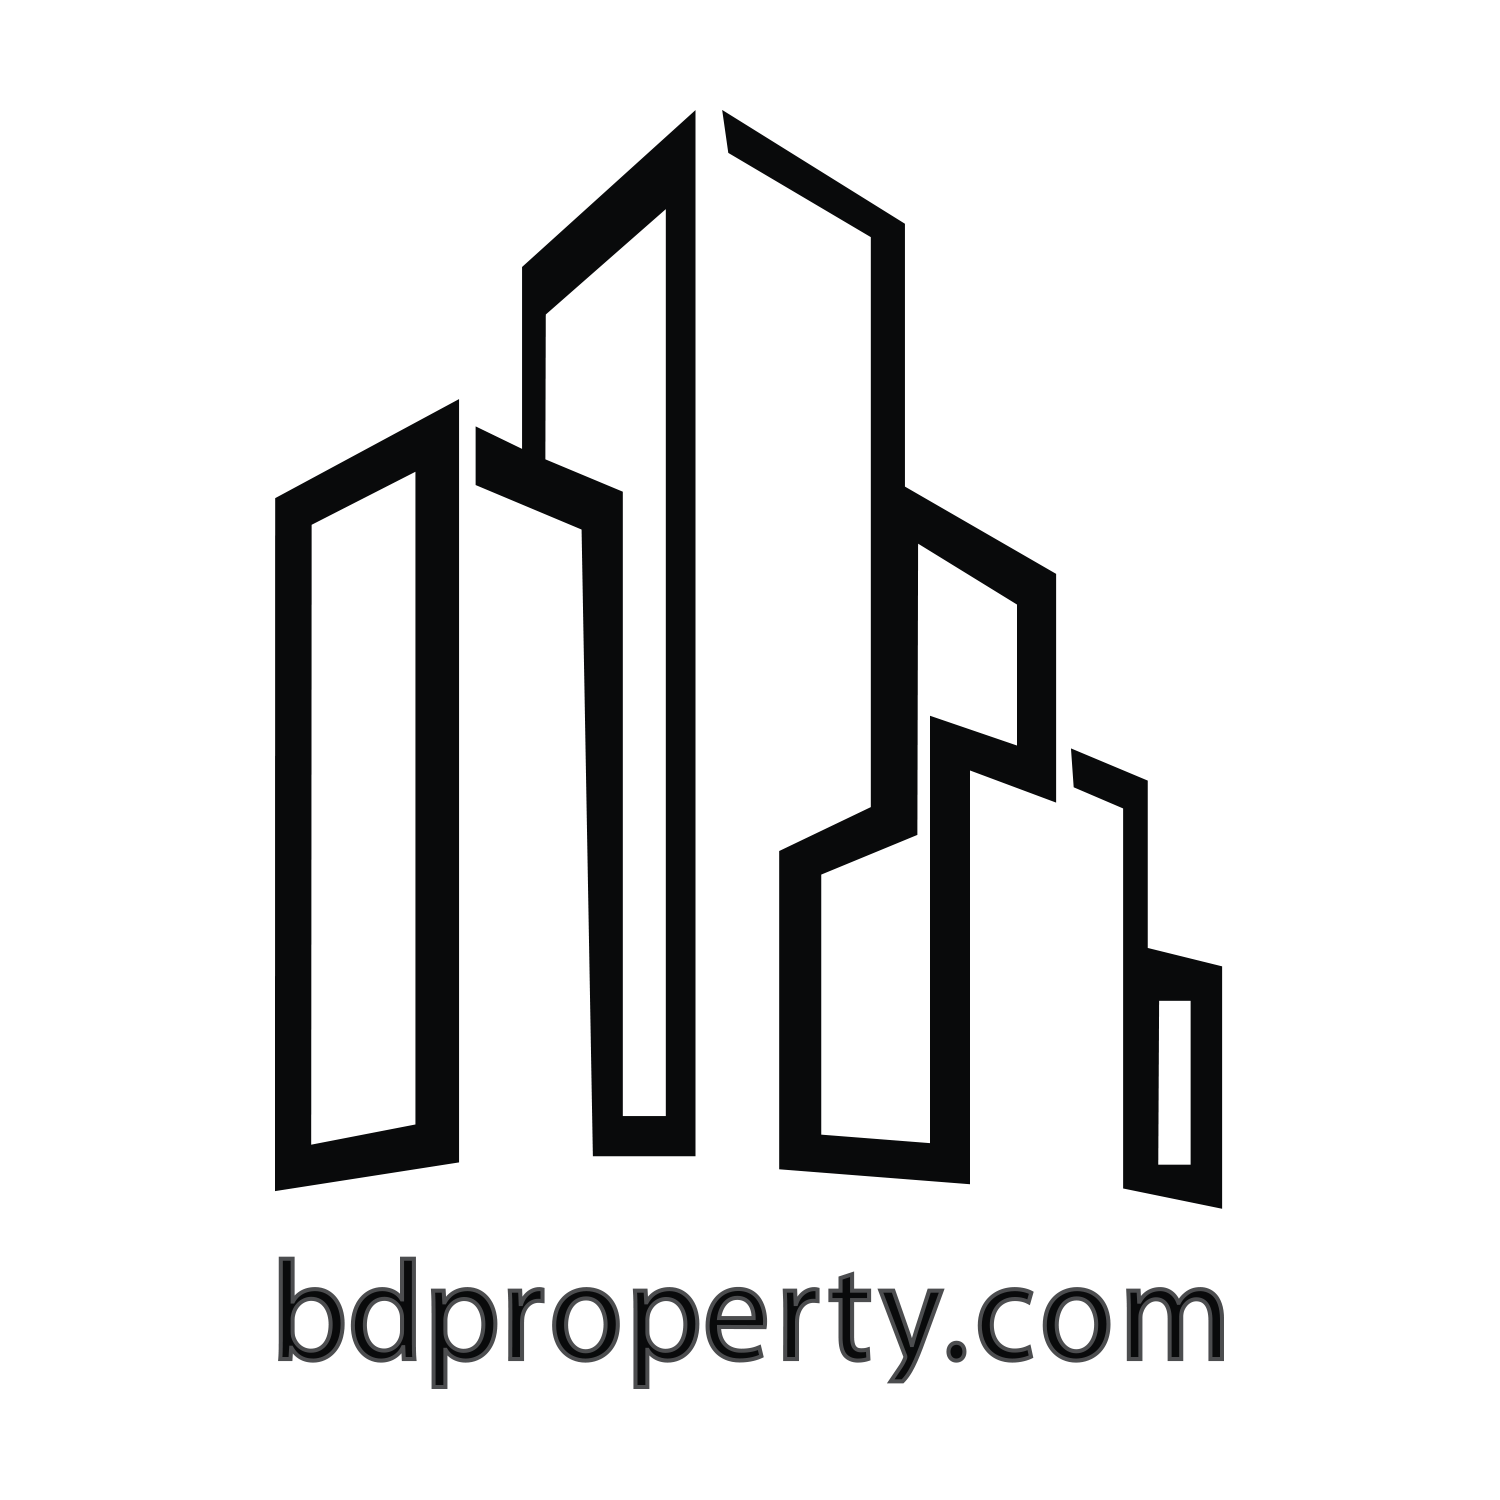 bdproperty.com